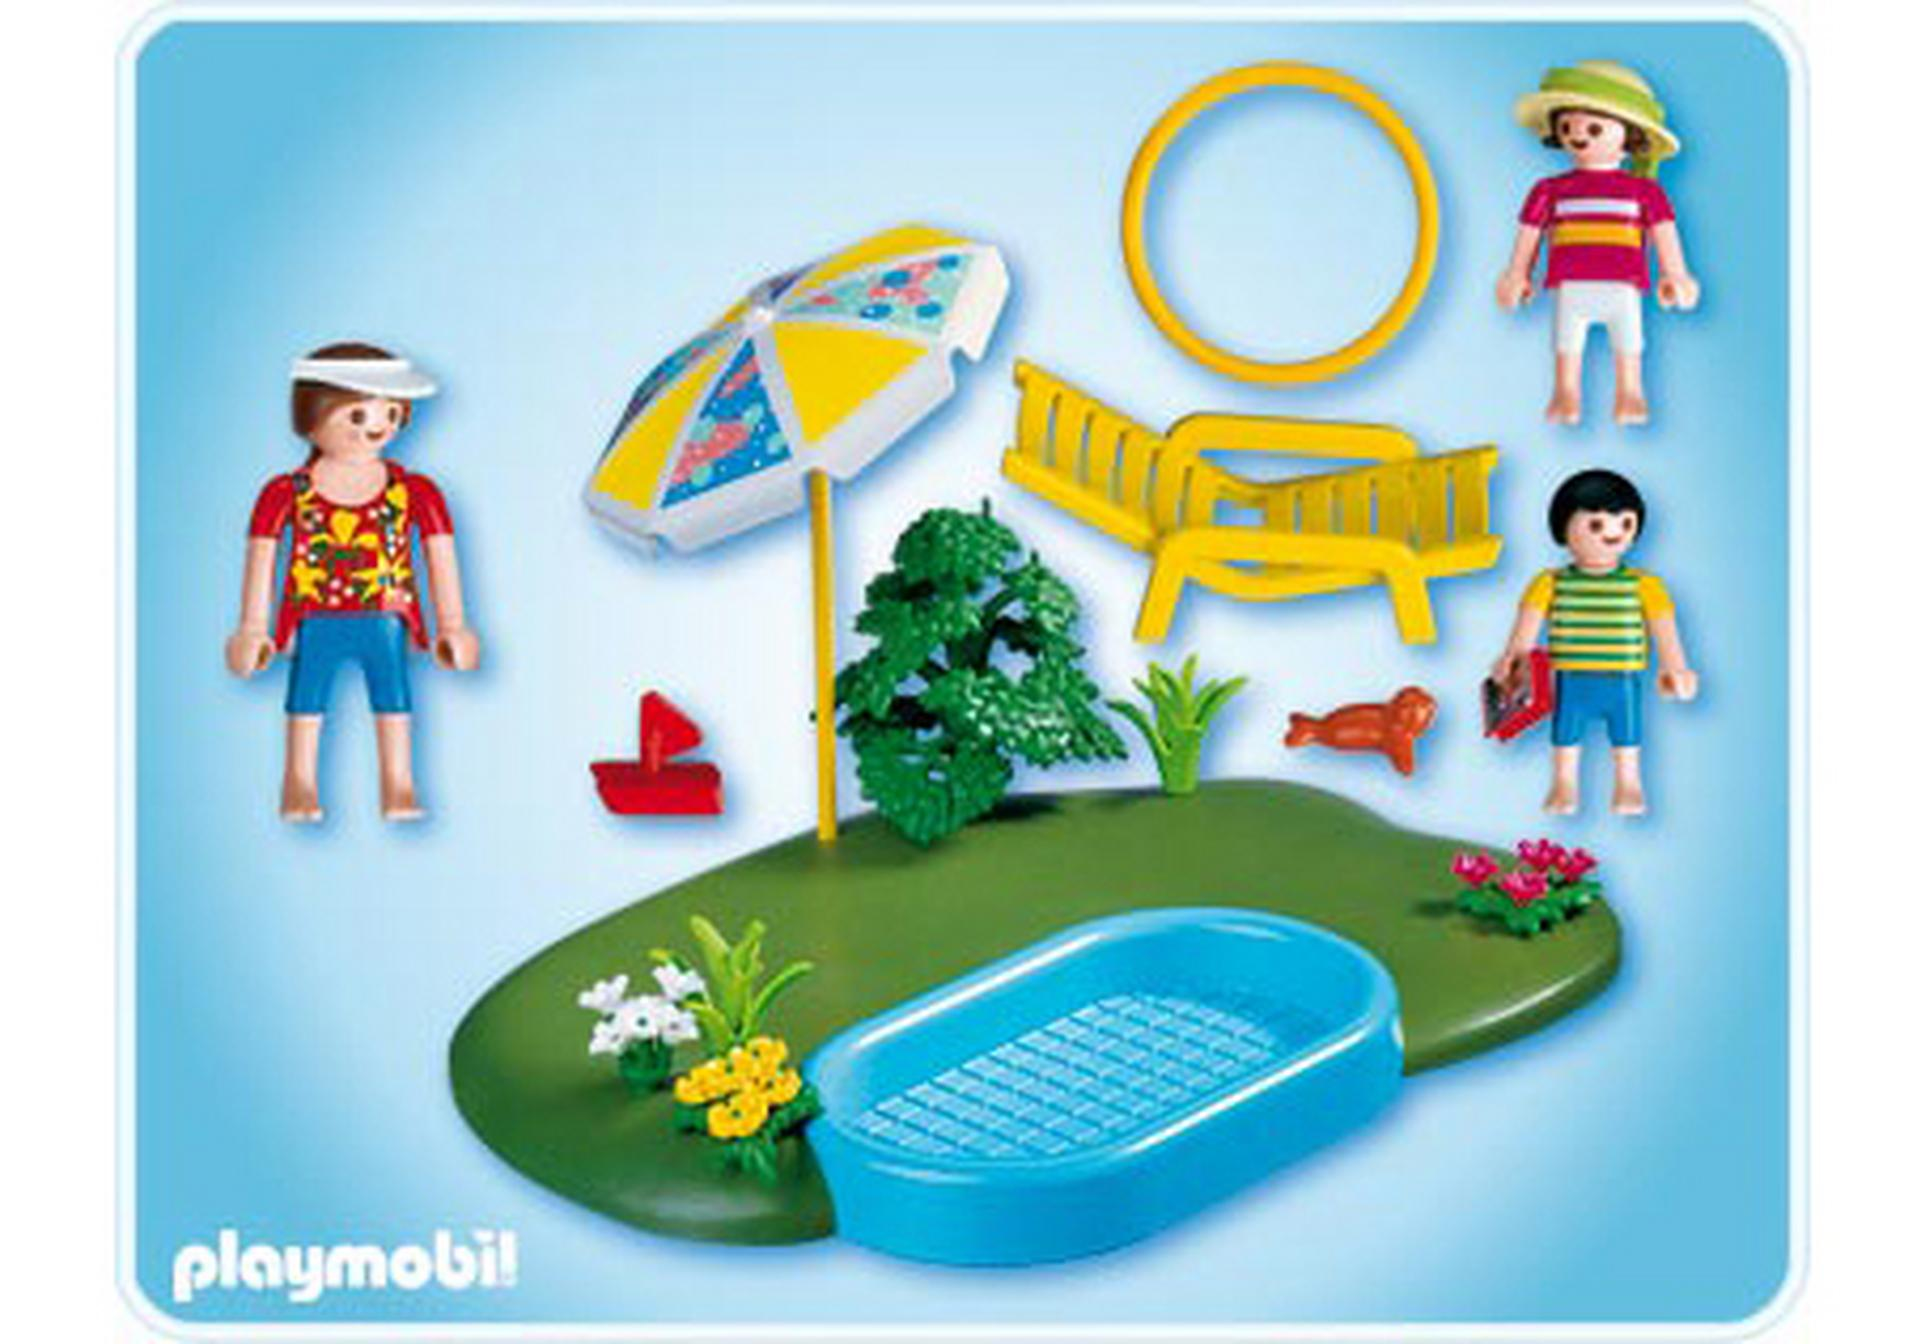 Compactset famille et piscine 4140 a playmobil france for Piscine de playmobil